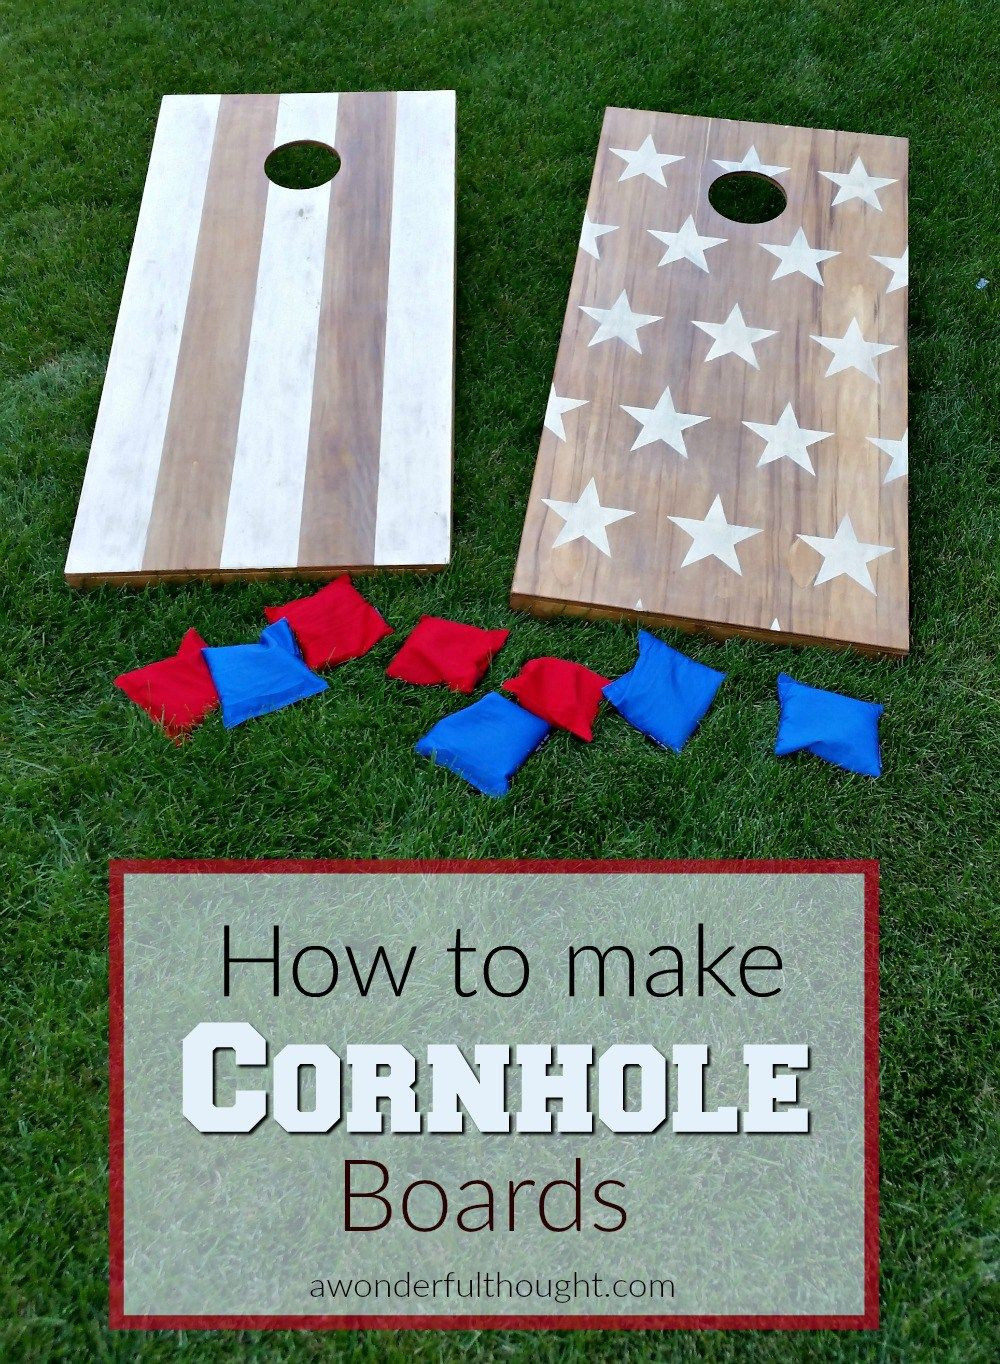 Best ideas about DIY Bean Bag Toss . Save or Pin DIY Cornhole Boards Now.